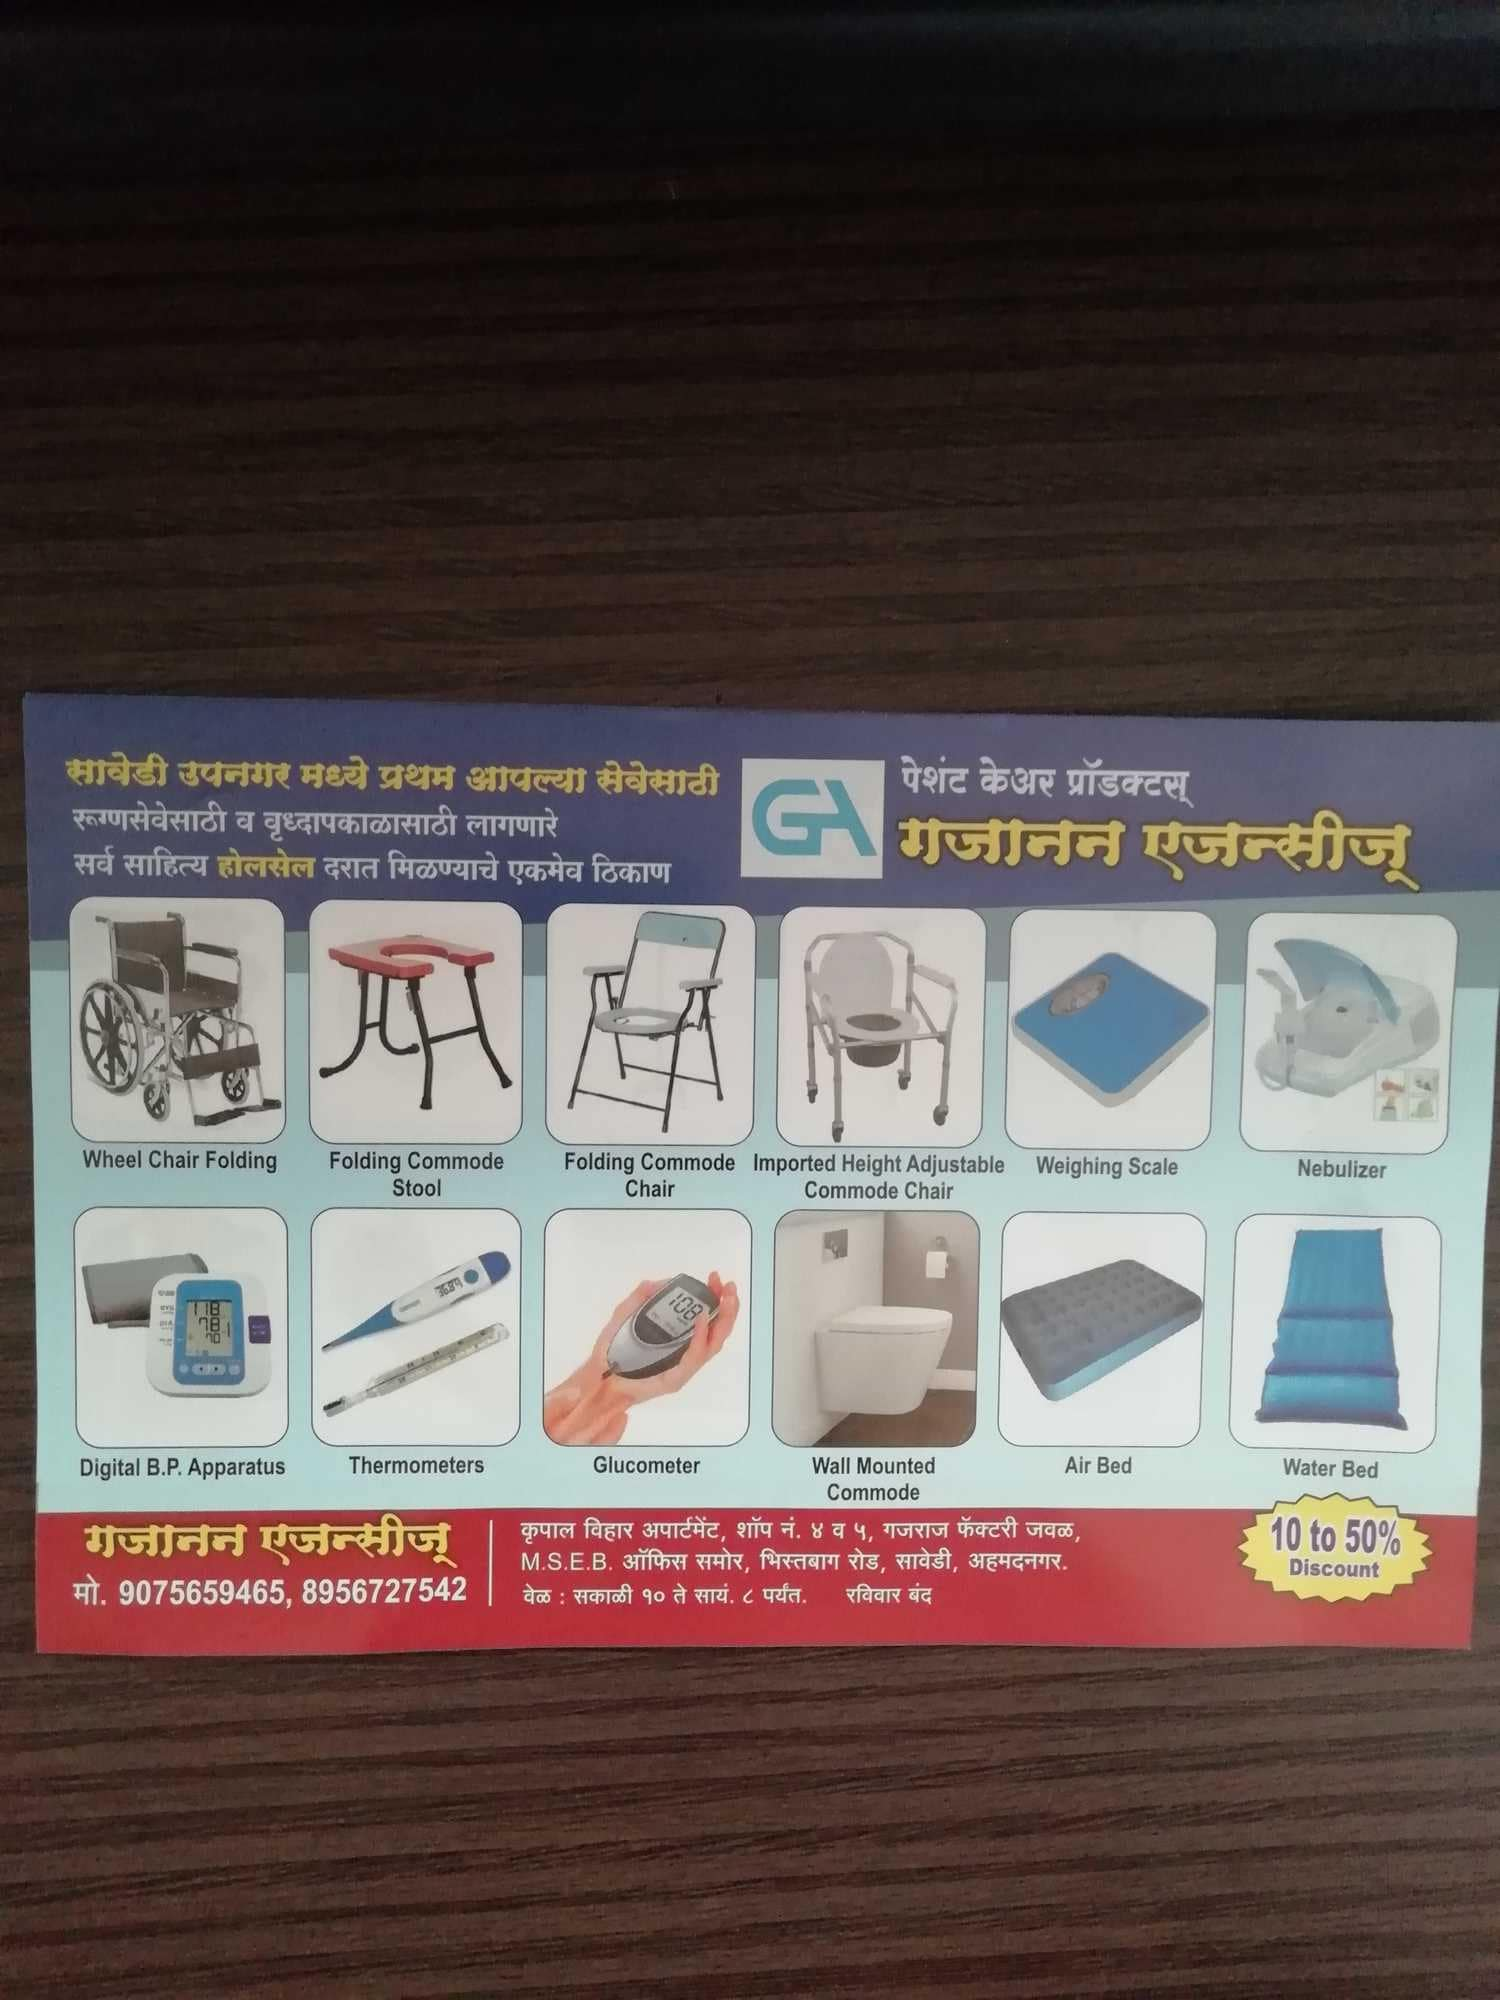 Top 50 Surgical Supply Store in Ahmednagar - Best Surgical Equipment